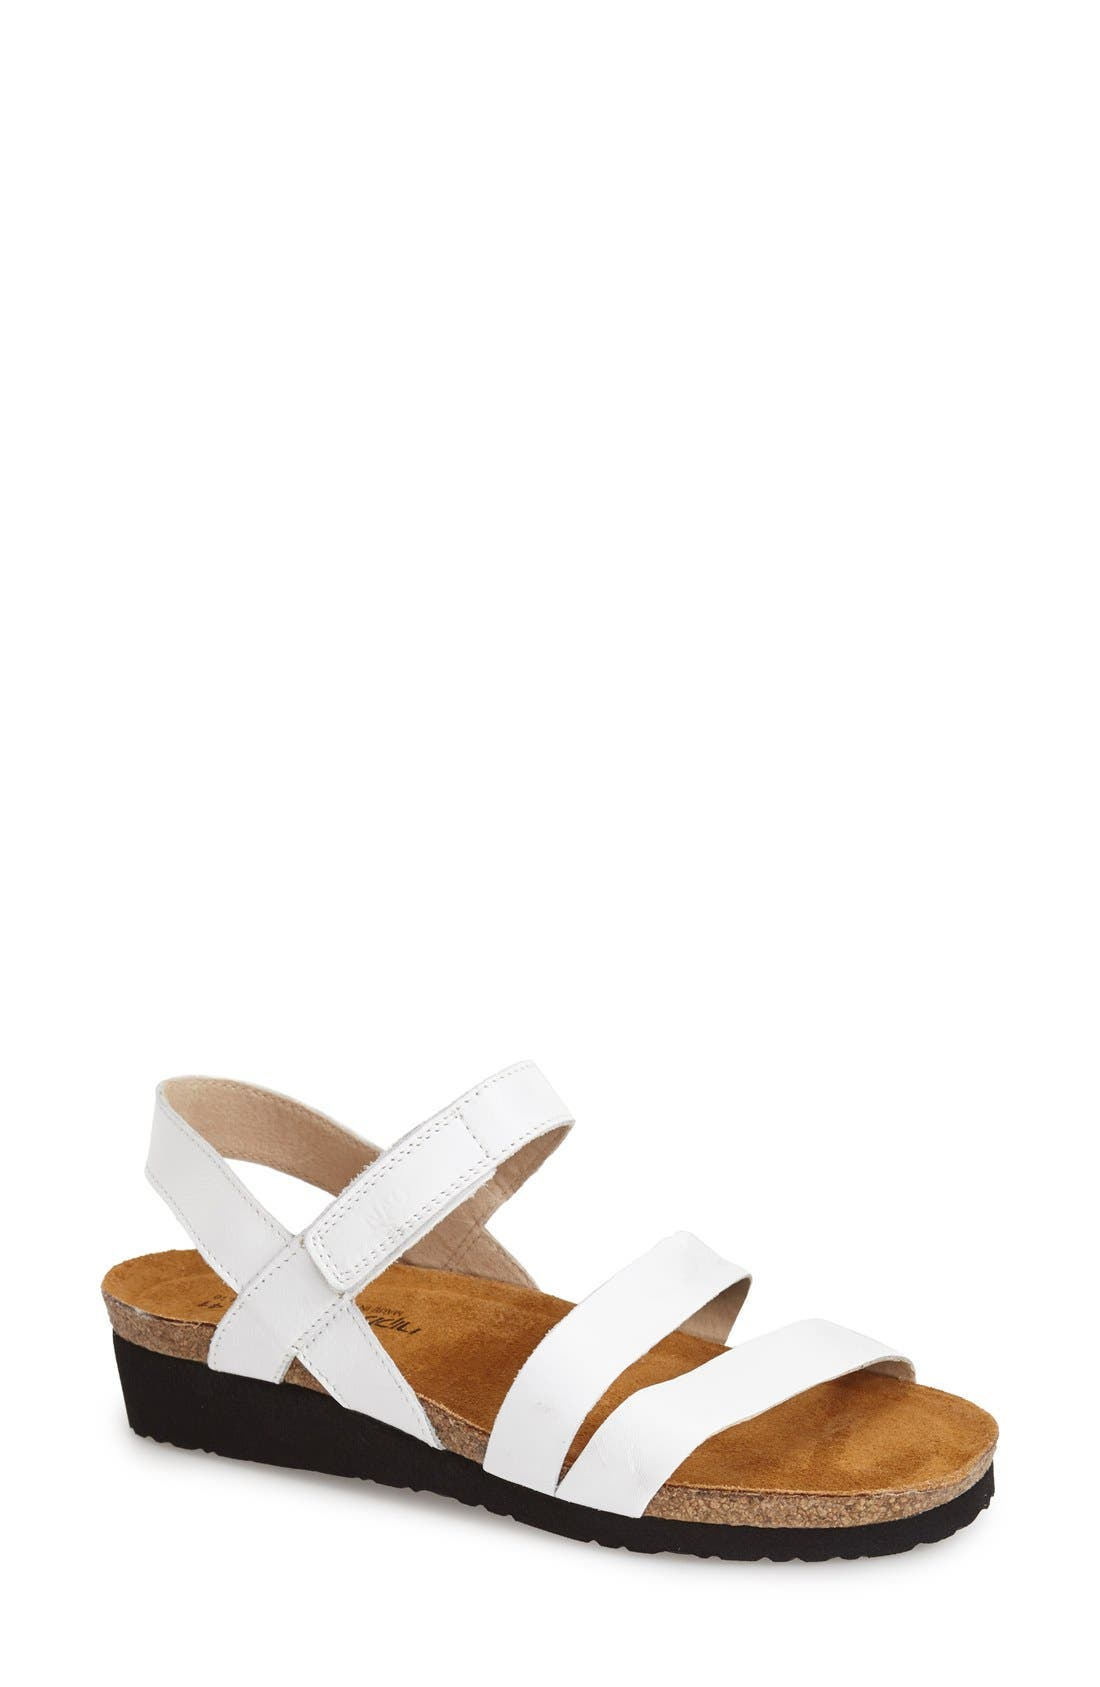 Clean-cut straps style a versatile, comfortable sandal with memory-foam padding and a cushy EVA sole. Style Name: Naot \\\'Kayla\\\' Sandal (Women). Style Number: 591927. Available in stores.